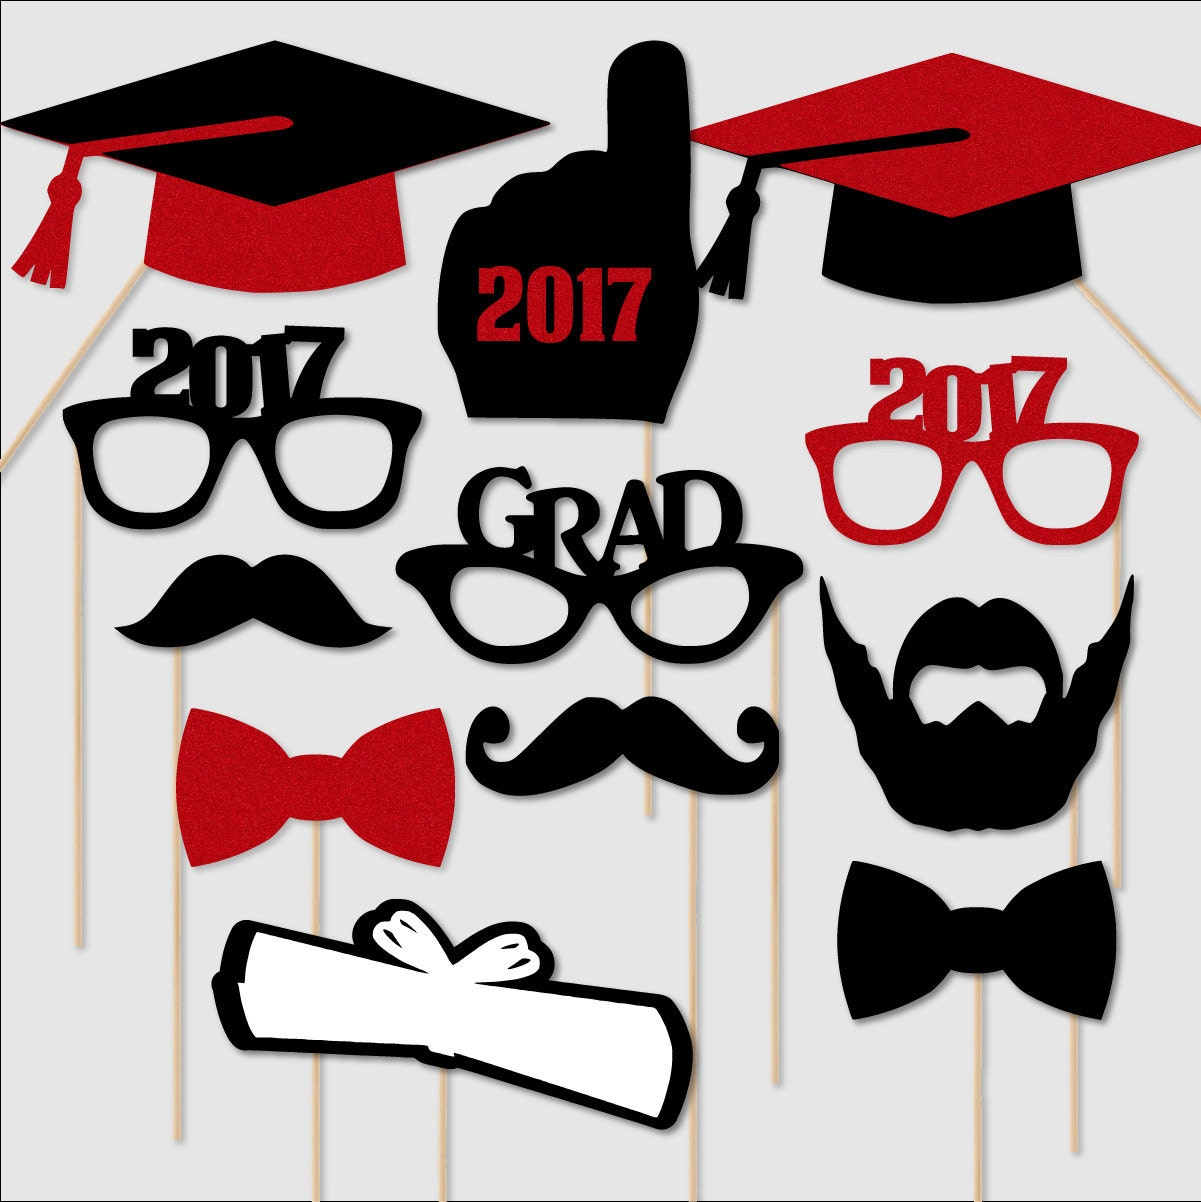 graduation prop 2017 graduation photo booth props graduation photobooth portrait glasses class of 2017 red glitter black set of 12 custom colors available